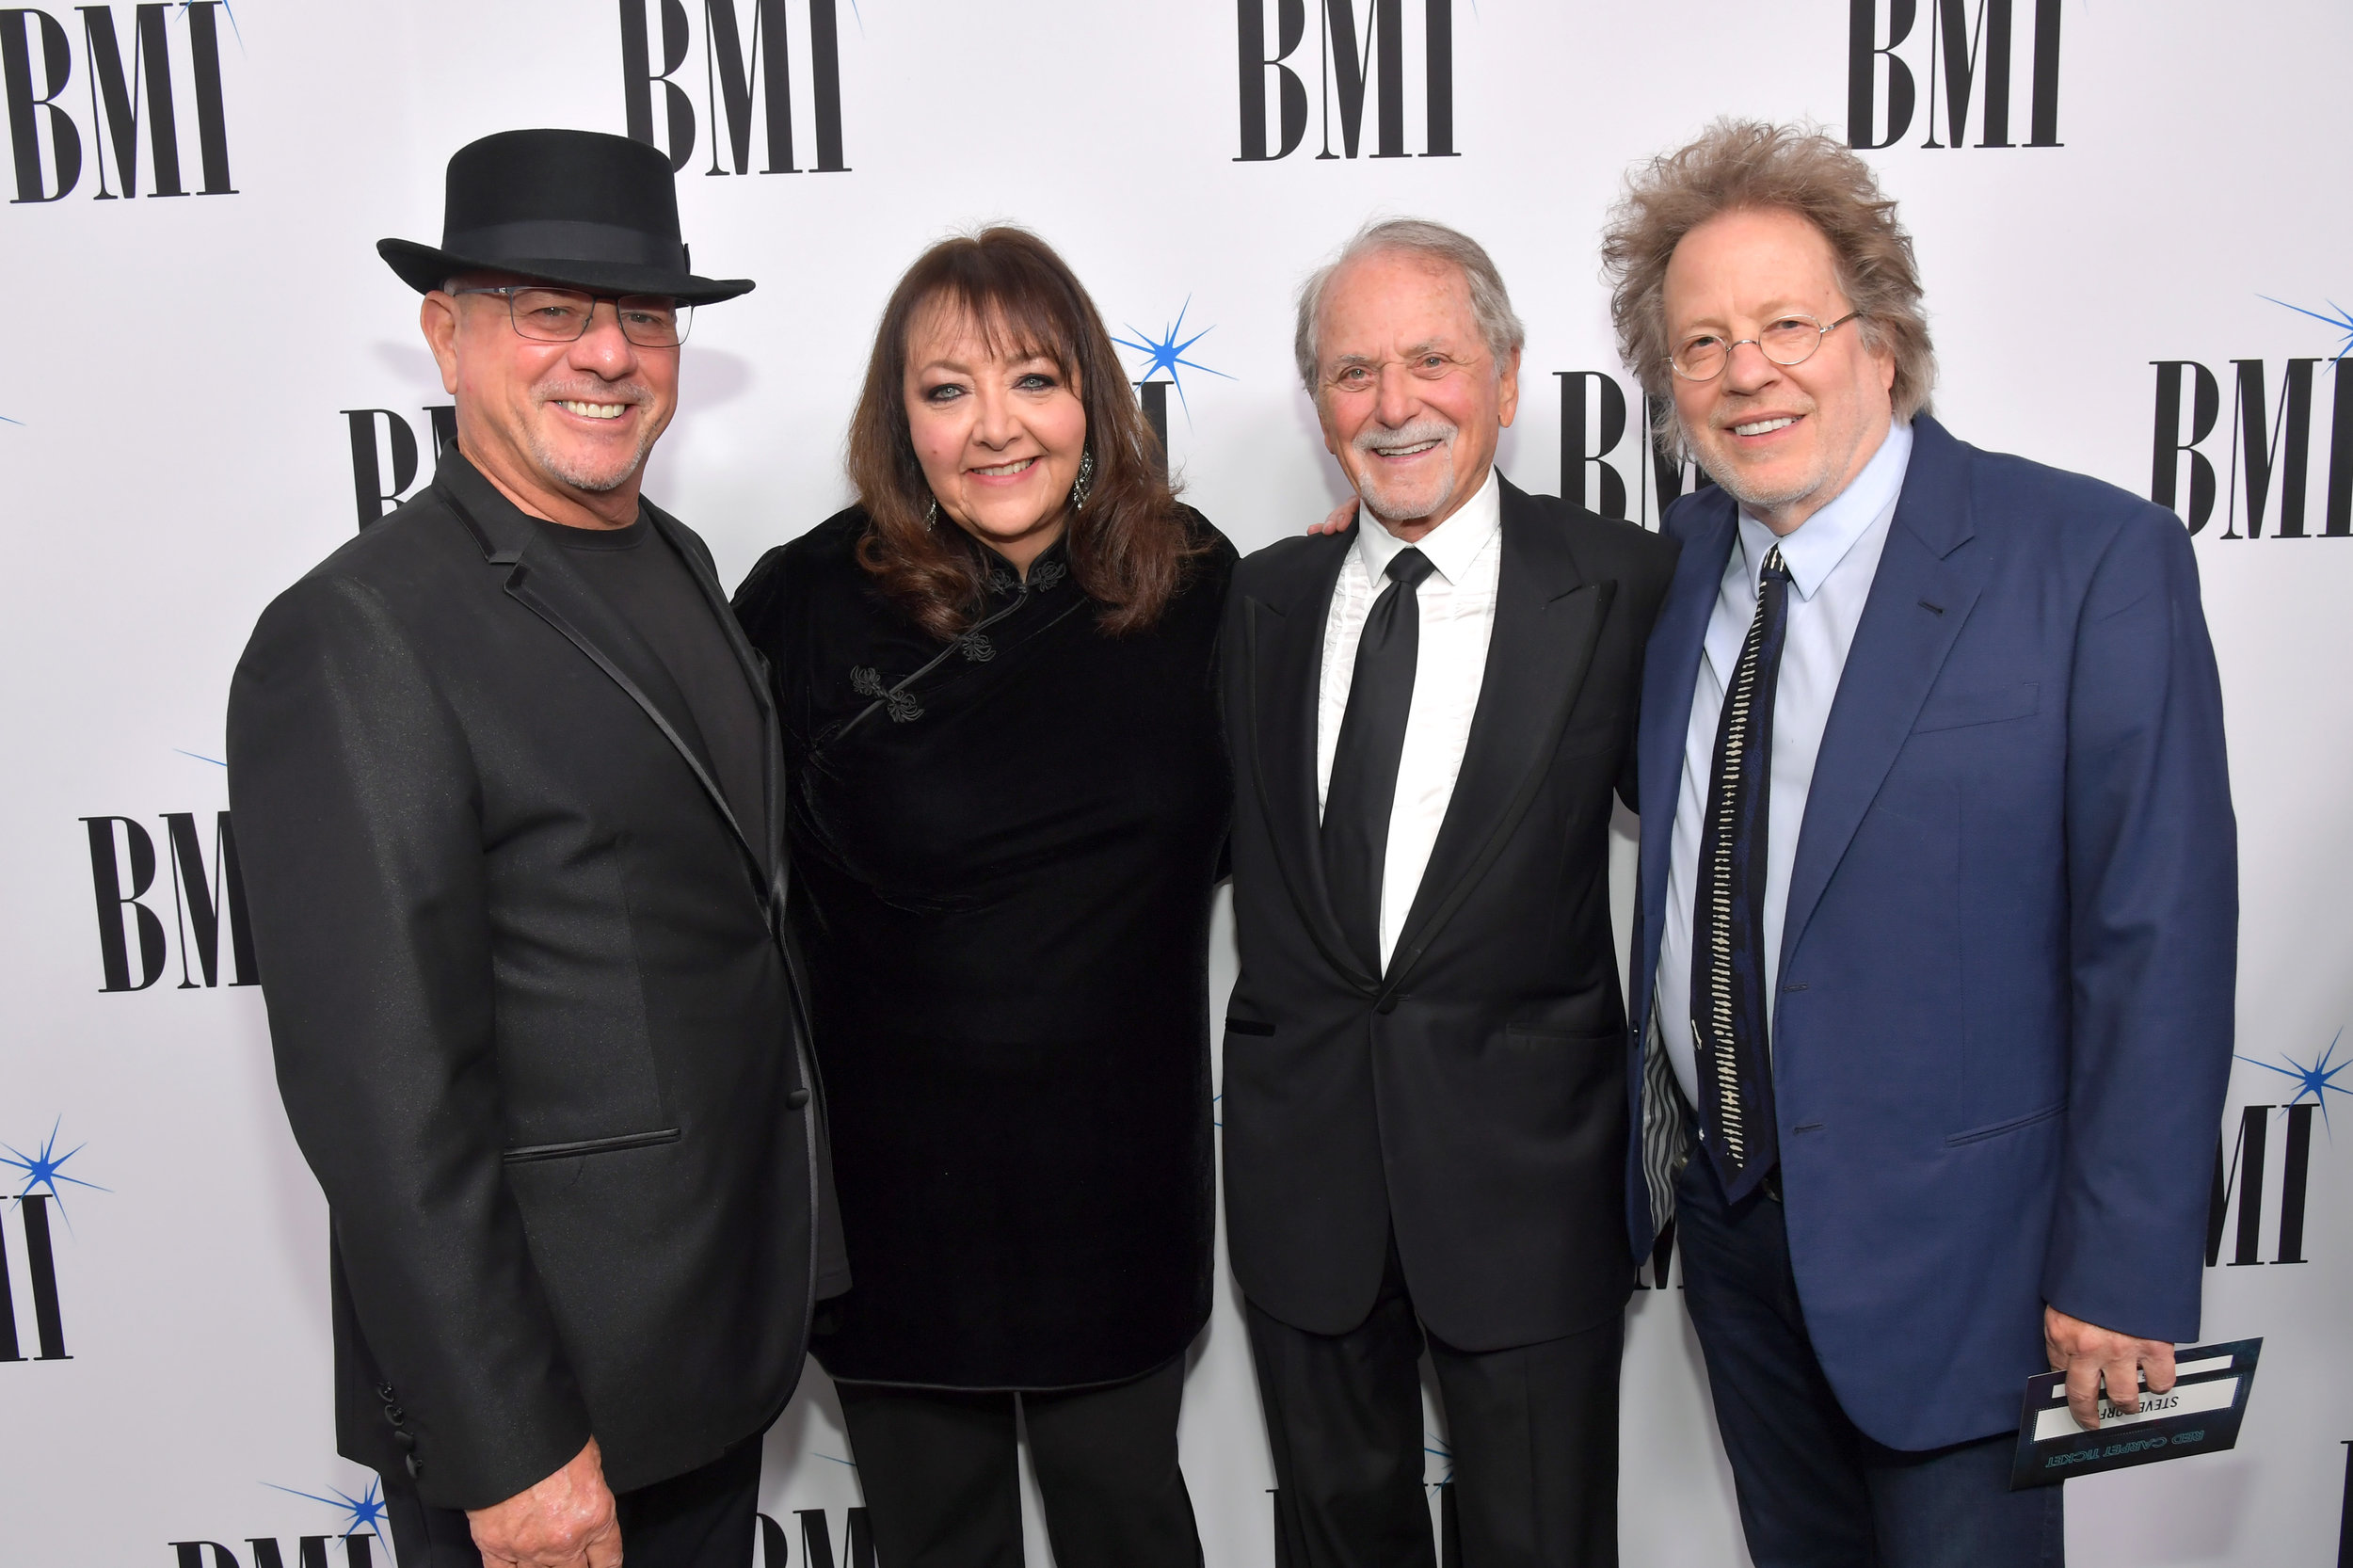 BEVERLY HILLS, CALIFORNIA - MAY 15: (L-R) Mike Post, BMI Creative - Film, TV & Visual Media VP Doreen Ringer-Ross, Barry De Vorzon, and Steve Dorff attend the 35th annual BMI Film, TV & Visual Media Awards on May 15, 2019 in Beverly Hills, California. (Photo by Lester Cohen/Getty Images for BMI)